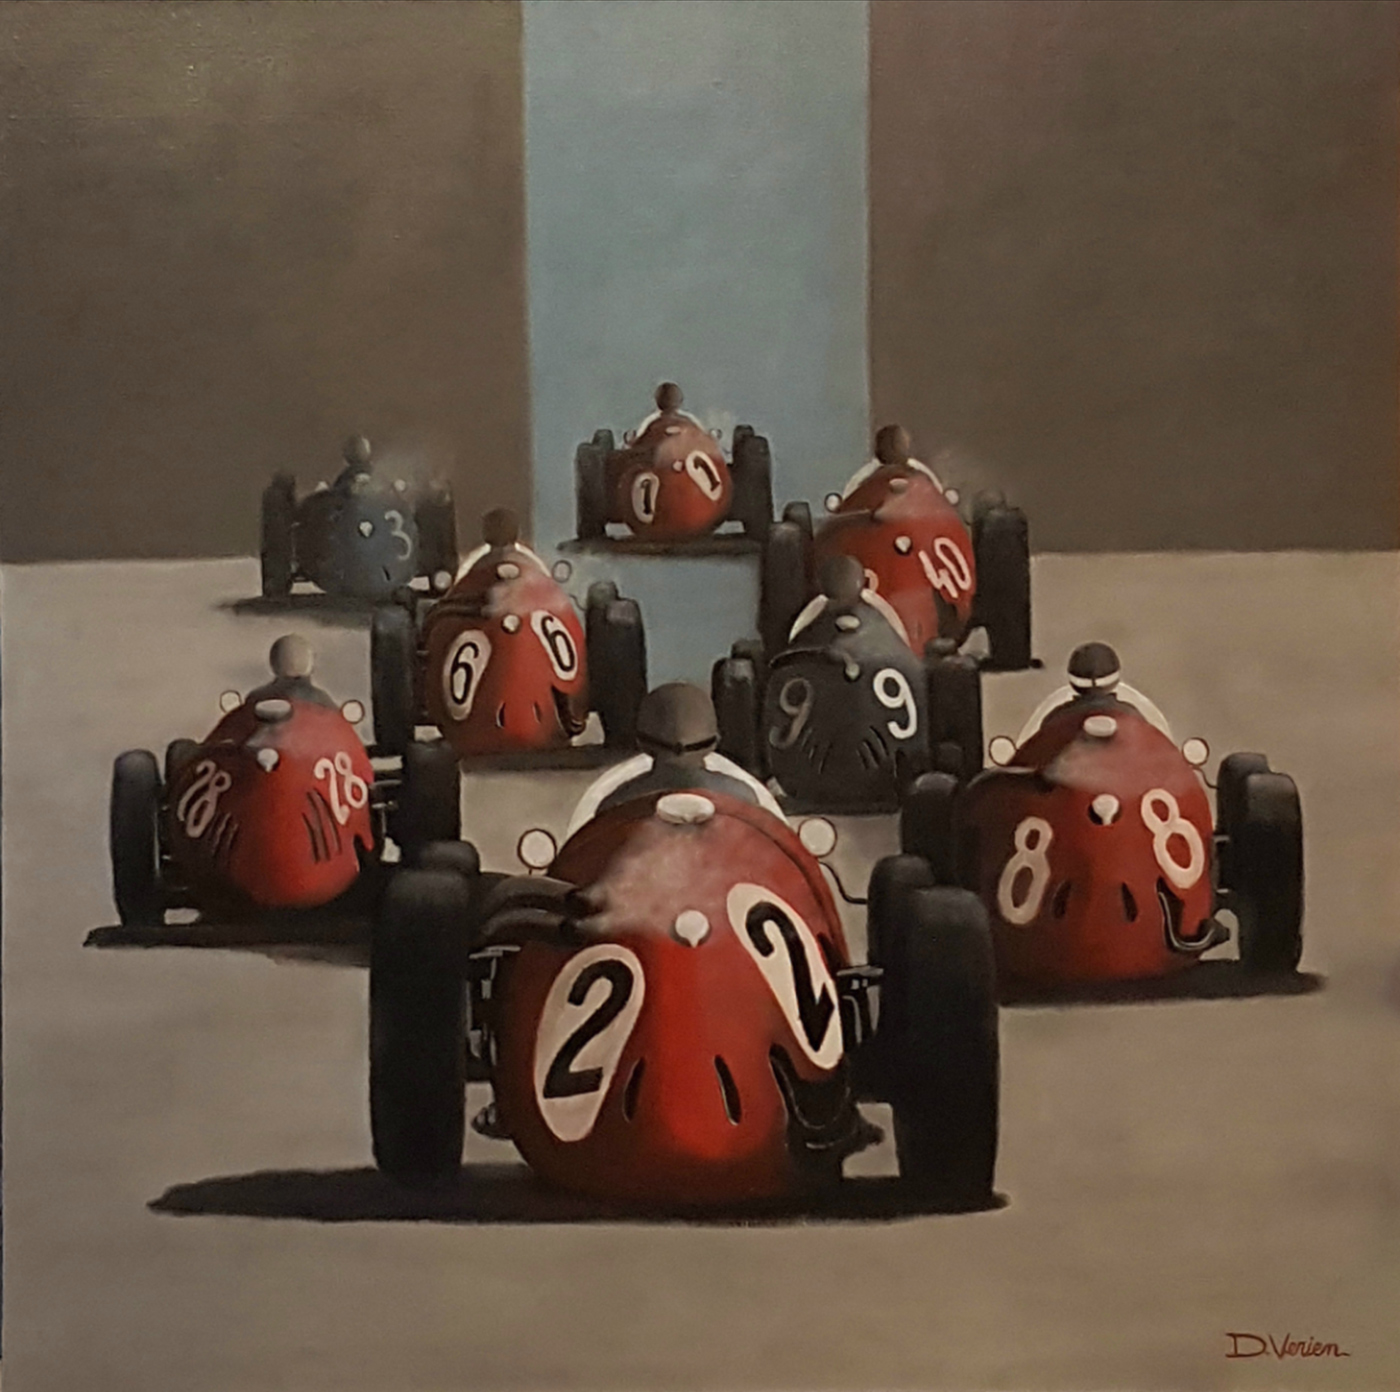 Maserati, maserati 250 F, tableau verien, gallery race cars paintings, peinture voiture